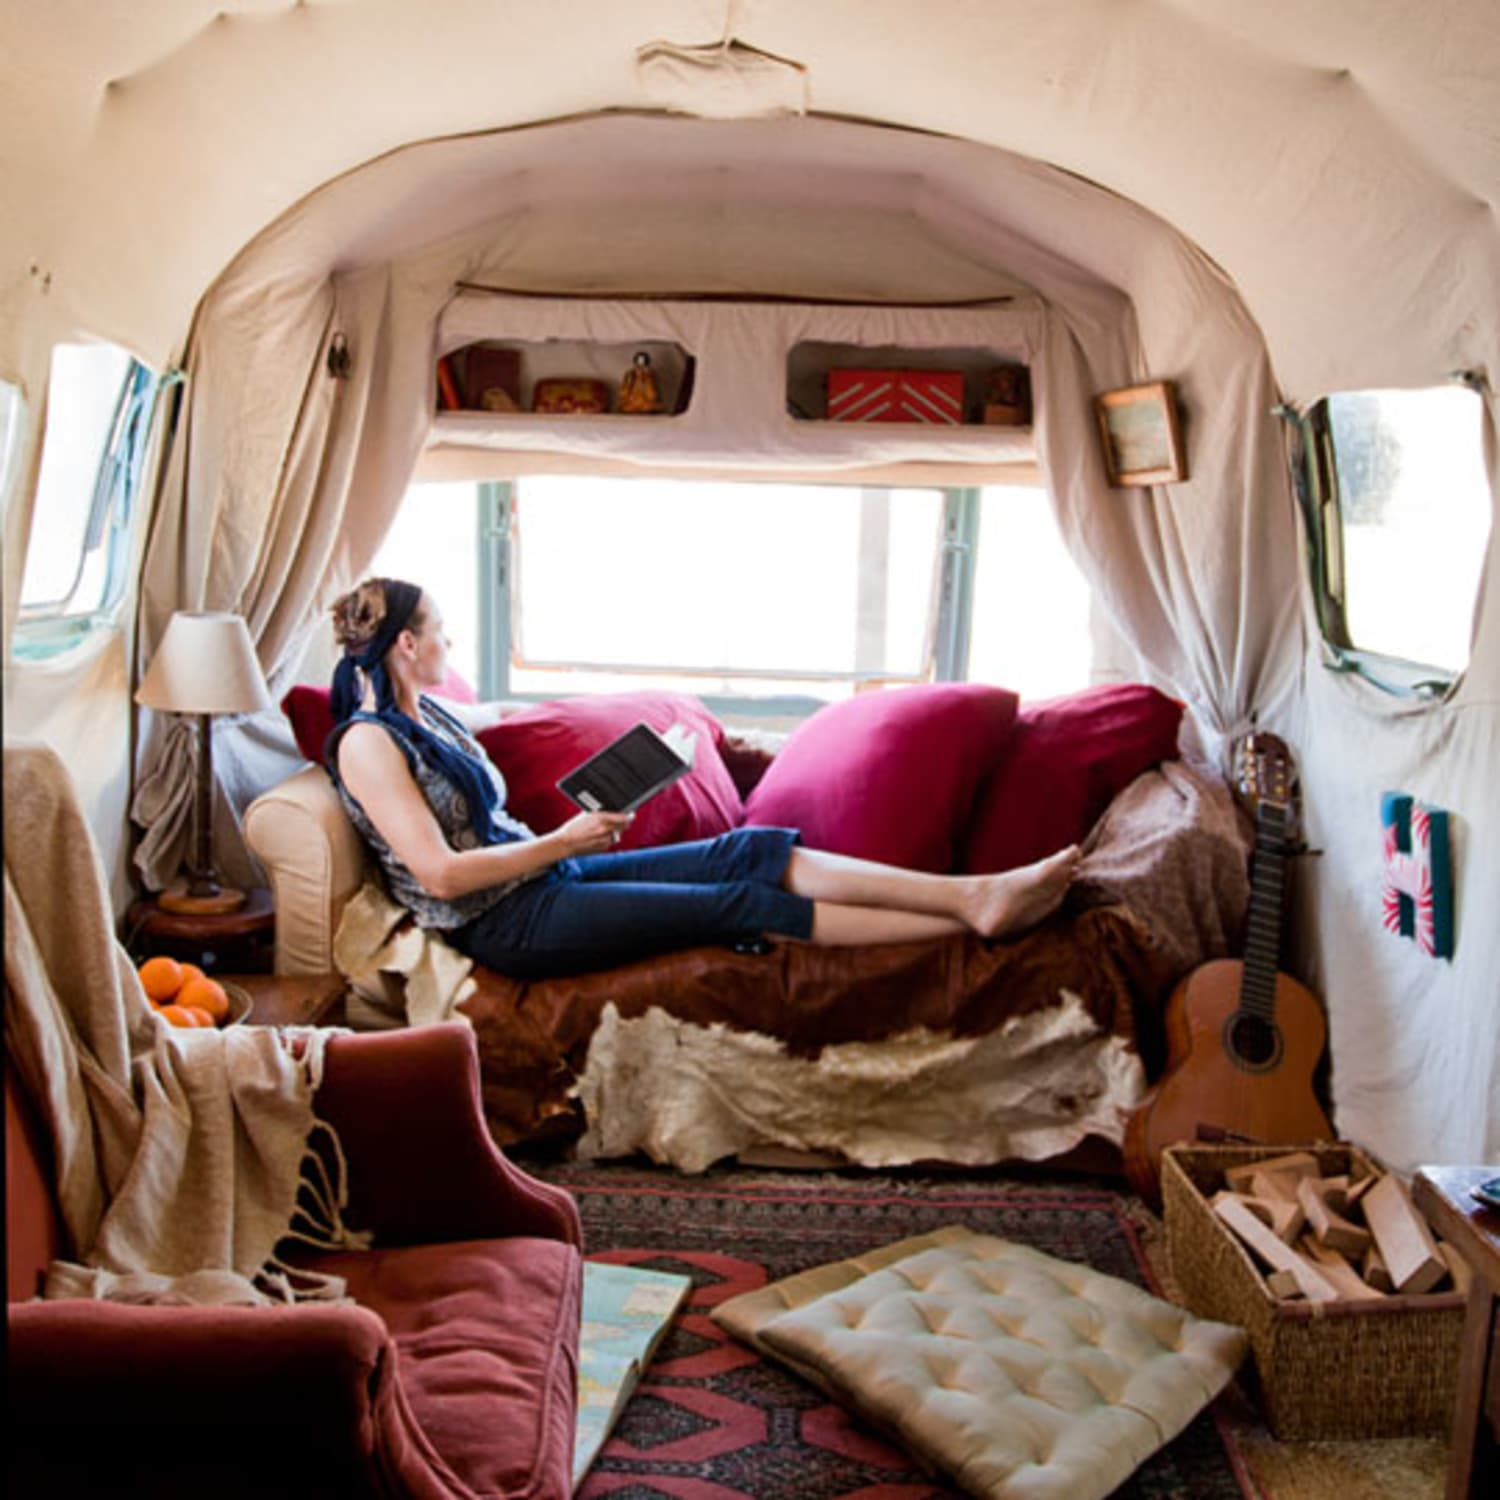 House Tour: An Unbelievable Airstream Trailer Home